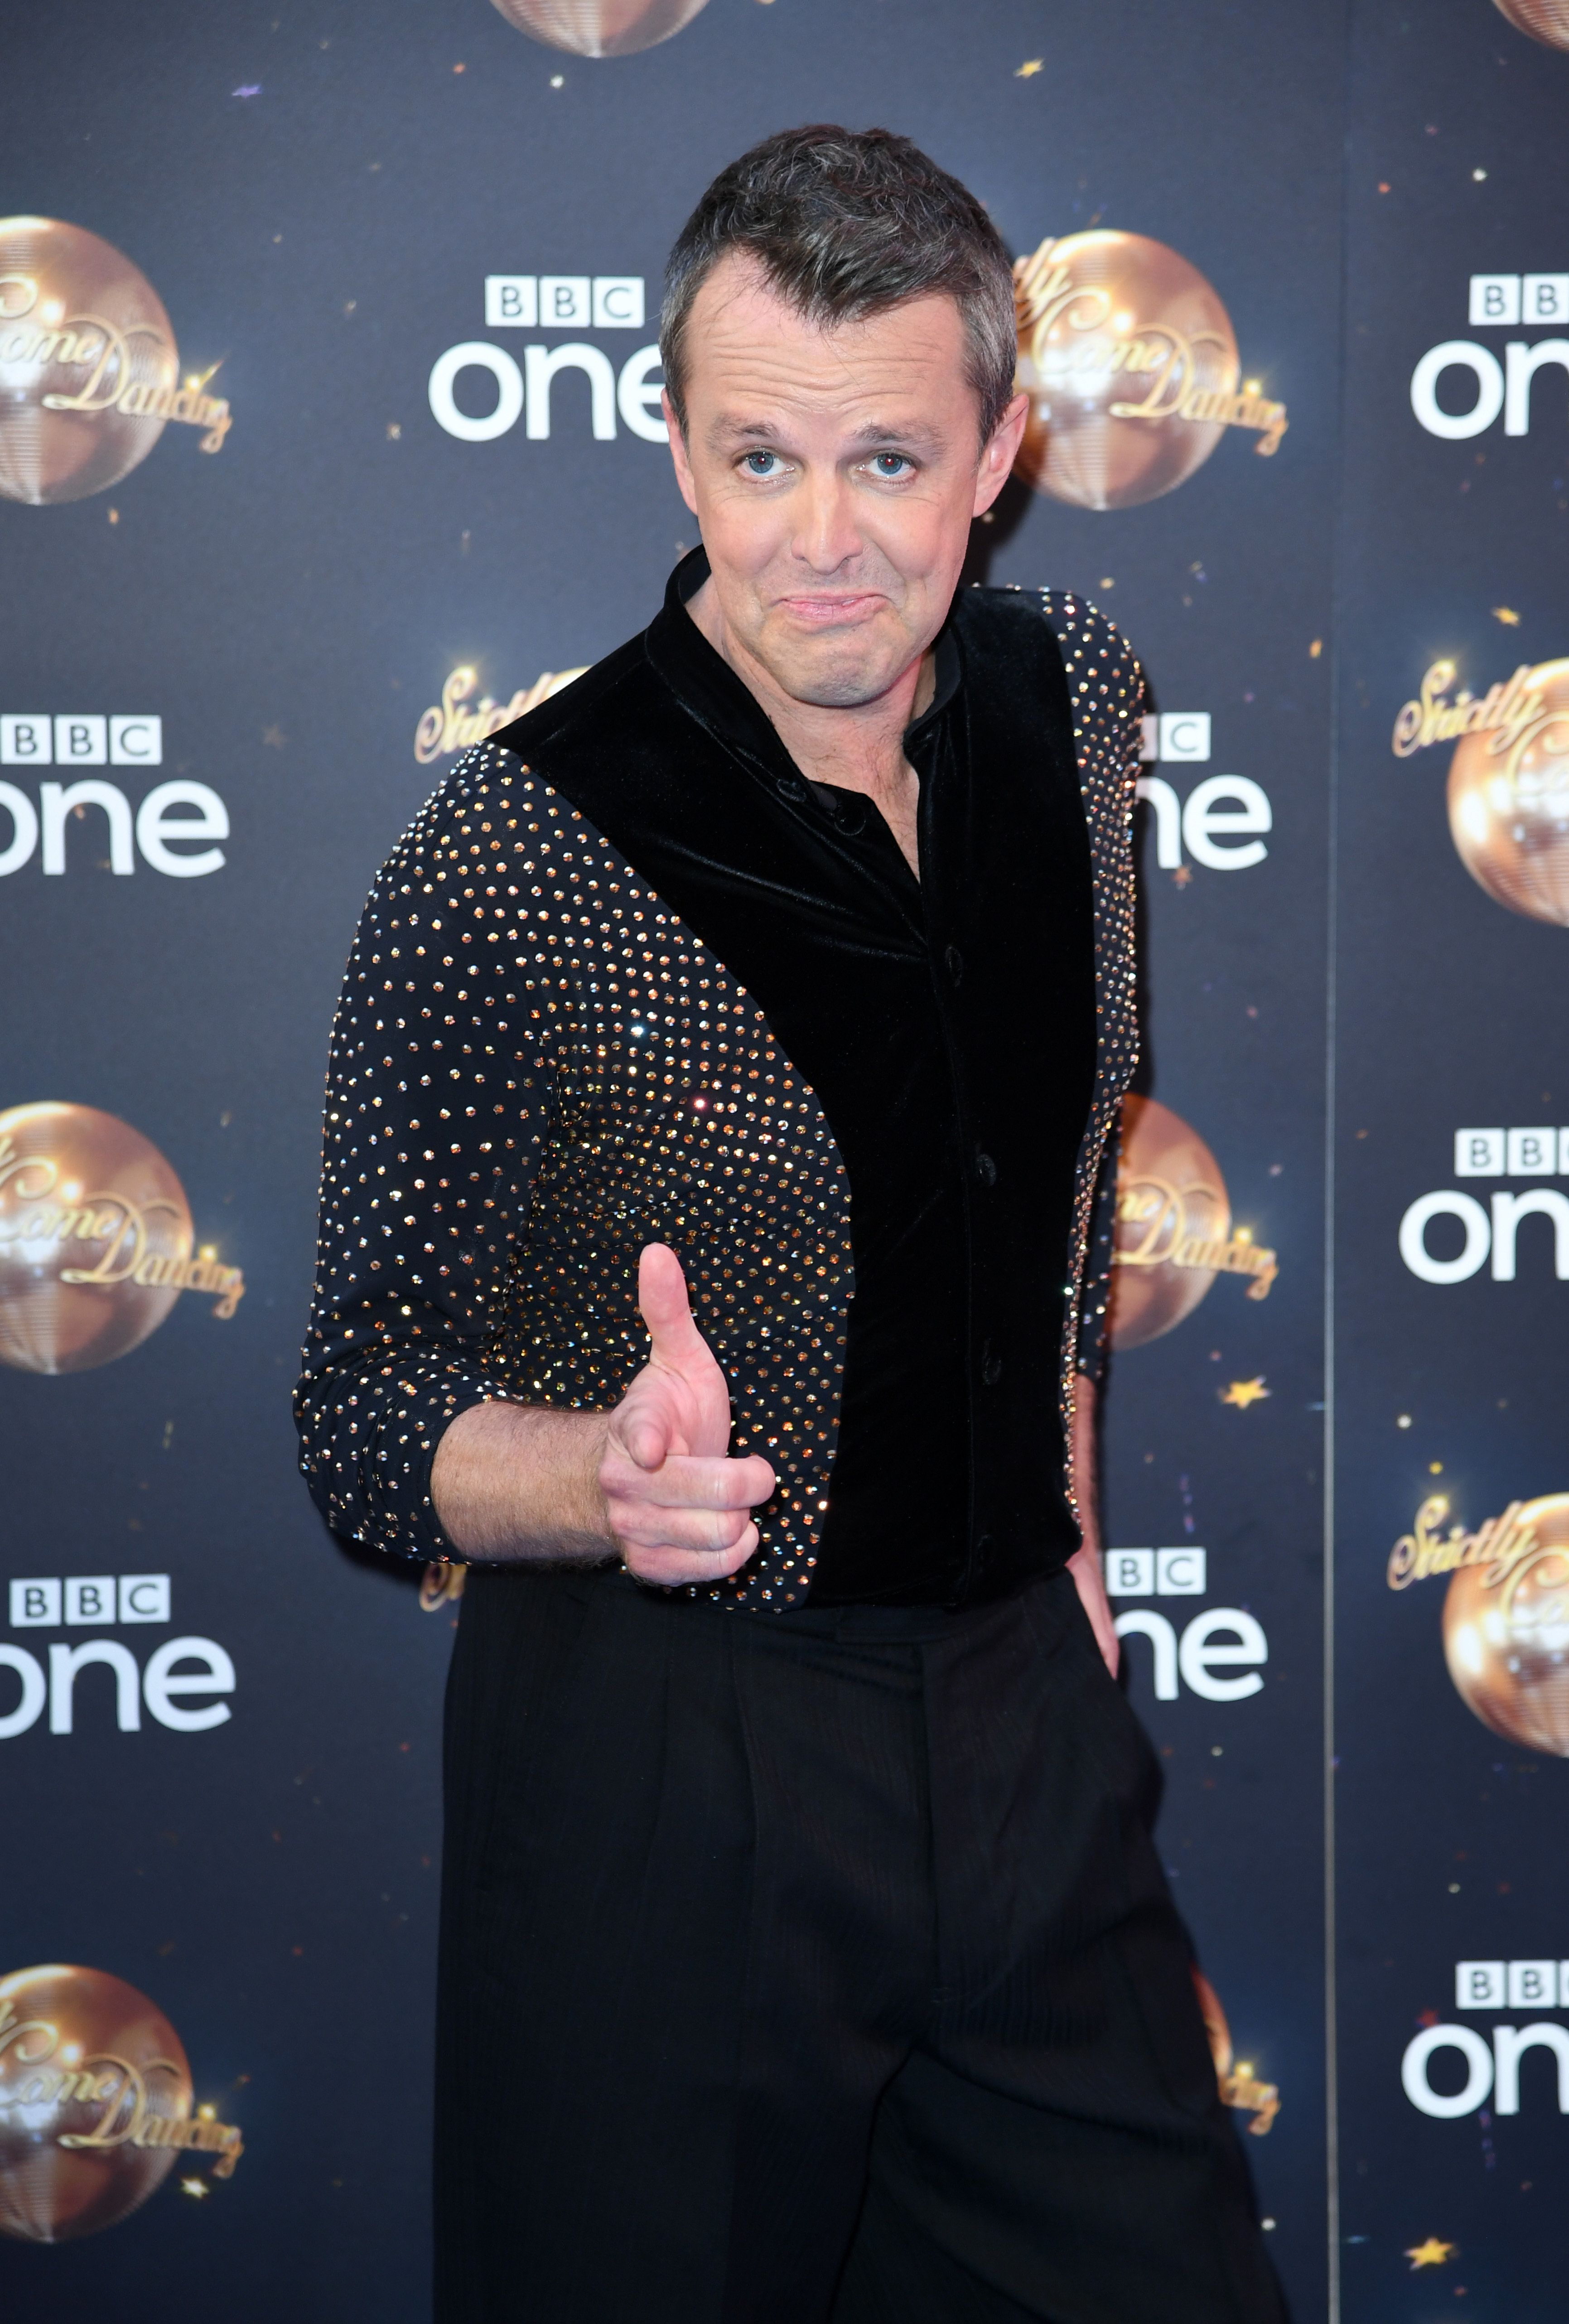 STRICTLY: Graeme Swann Hints At Behind-The-Scenes 'Back-Stabbing' On 'Strictly Come